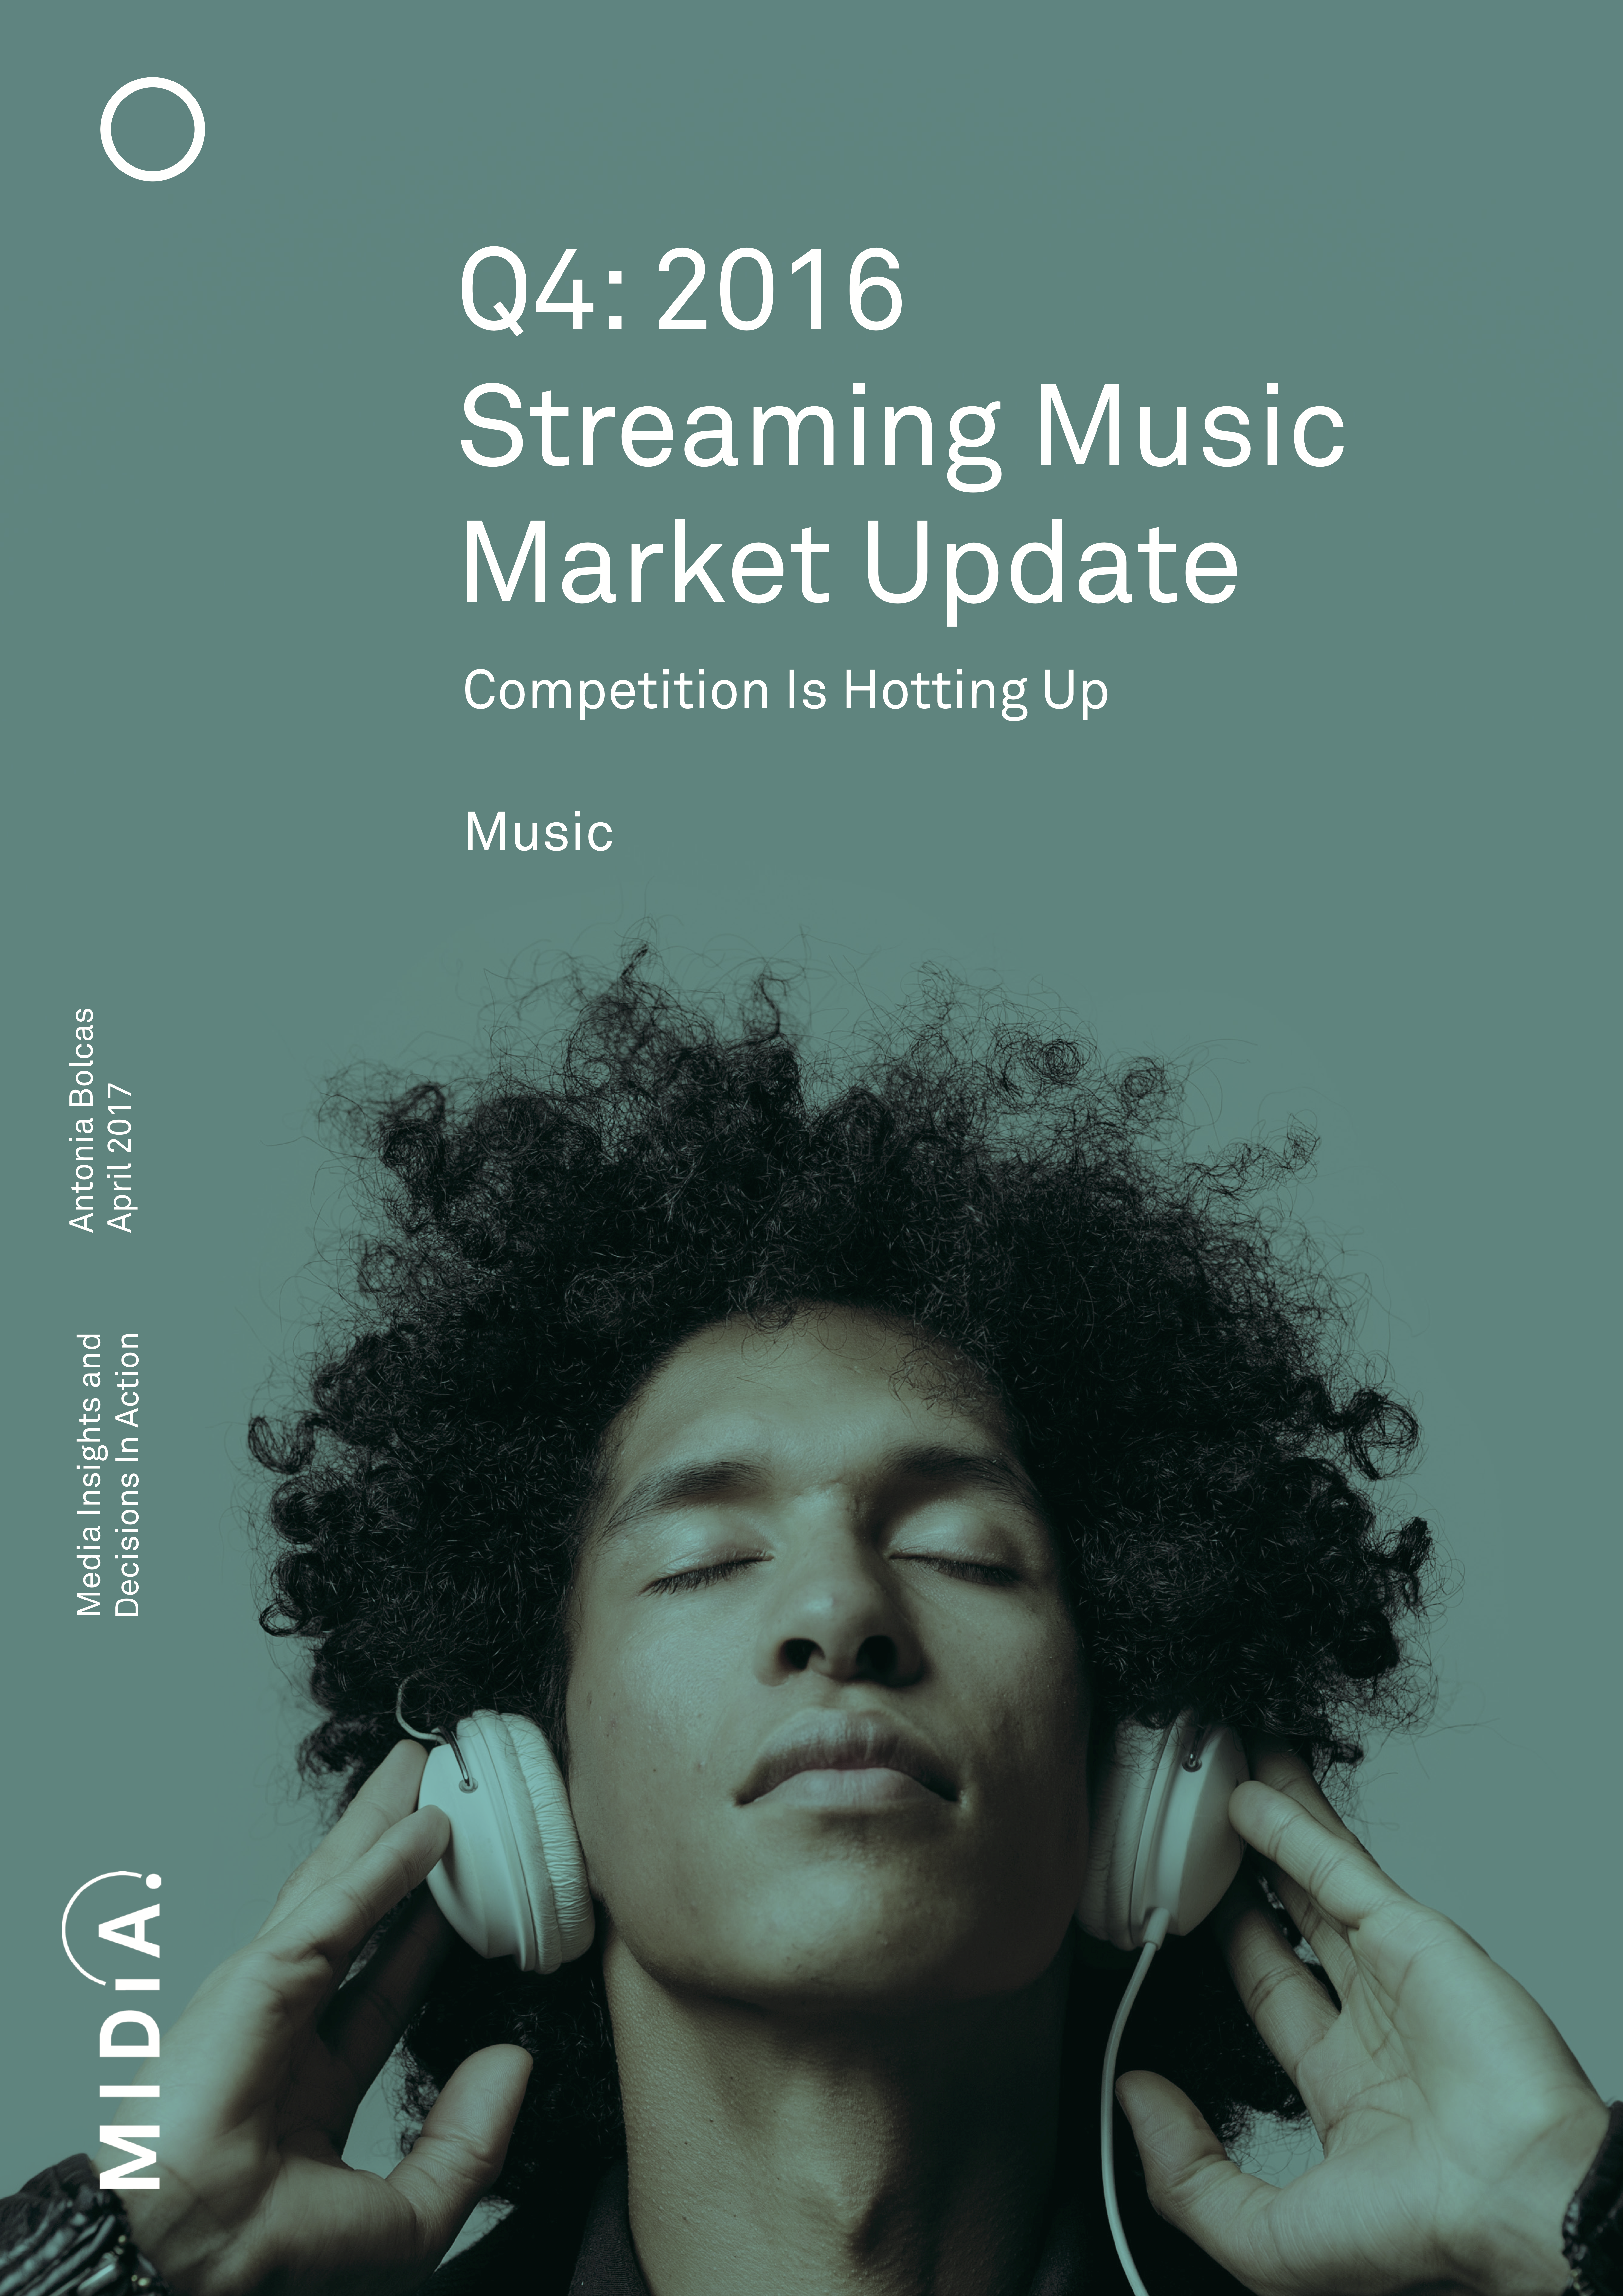 Cover image for Q4: 2016 Streaming Music Market Update